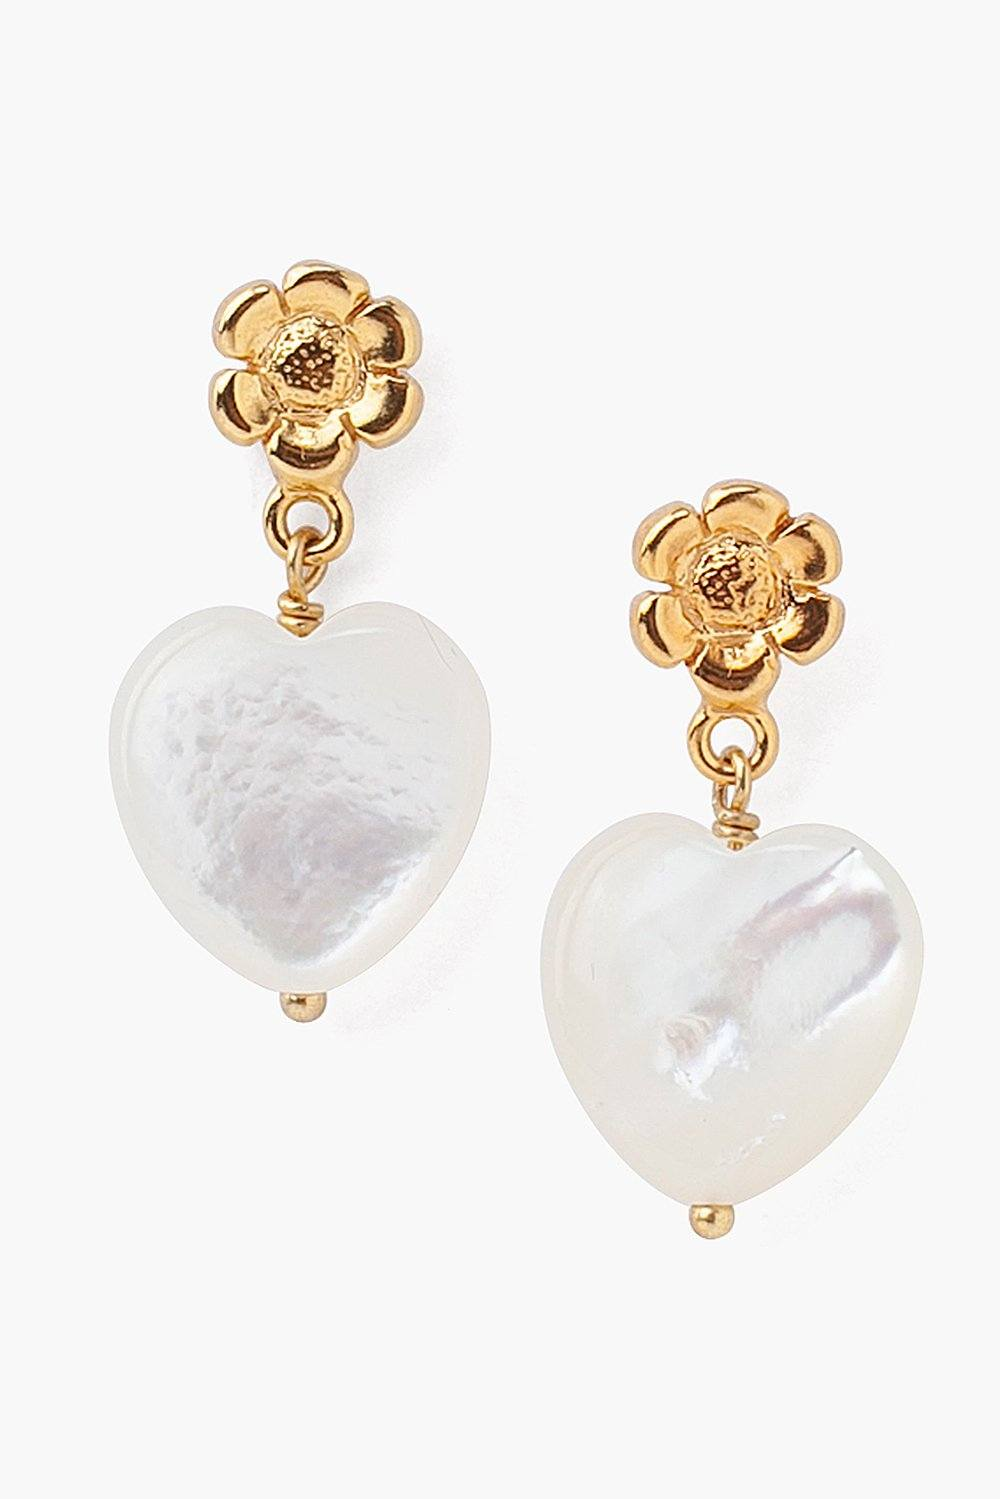 Tiered Flower and White Mother of Pearl Heart Earrings